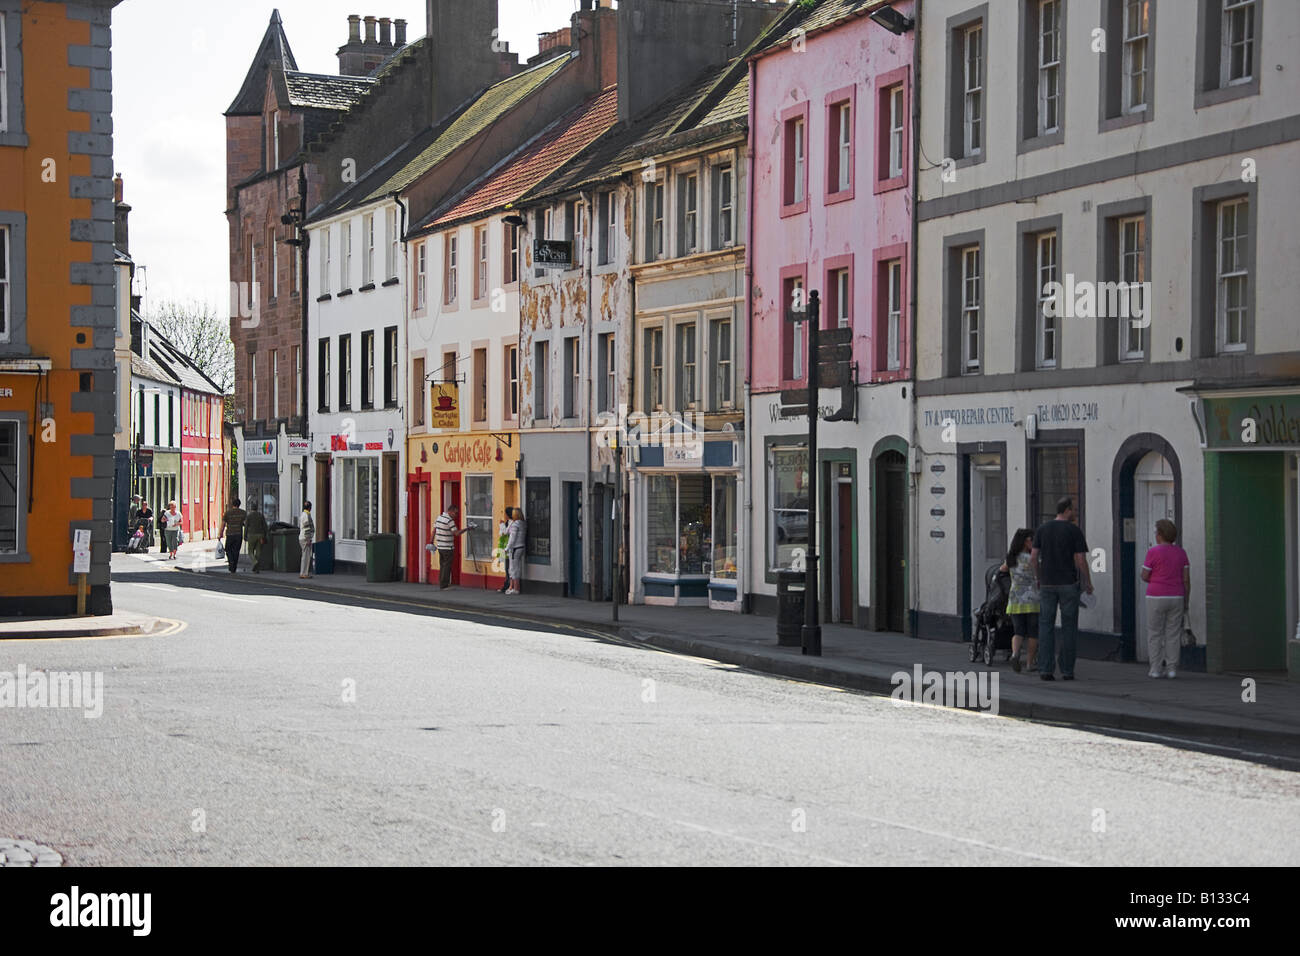 Haddington East Lothian. Scotland. - Stock Image